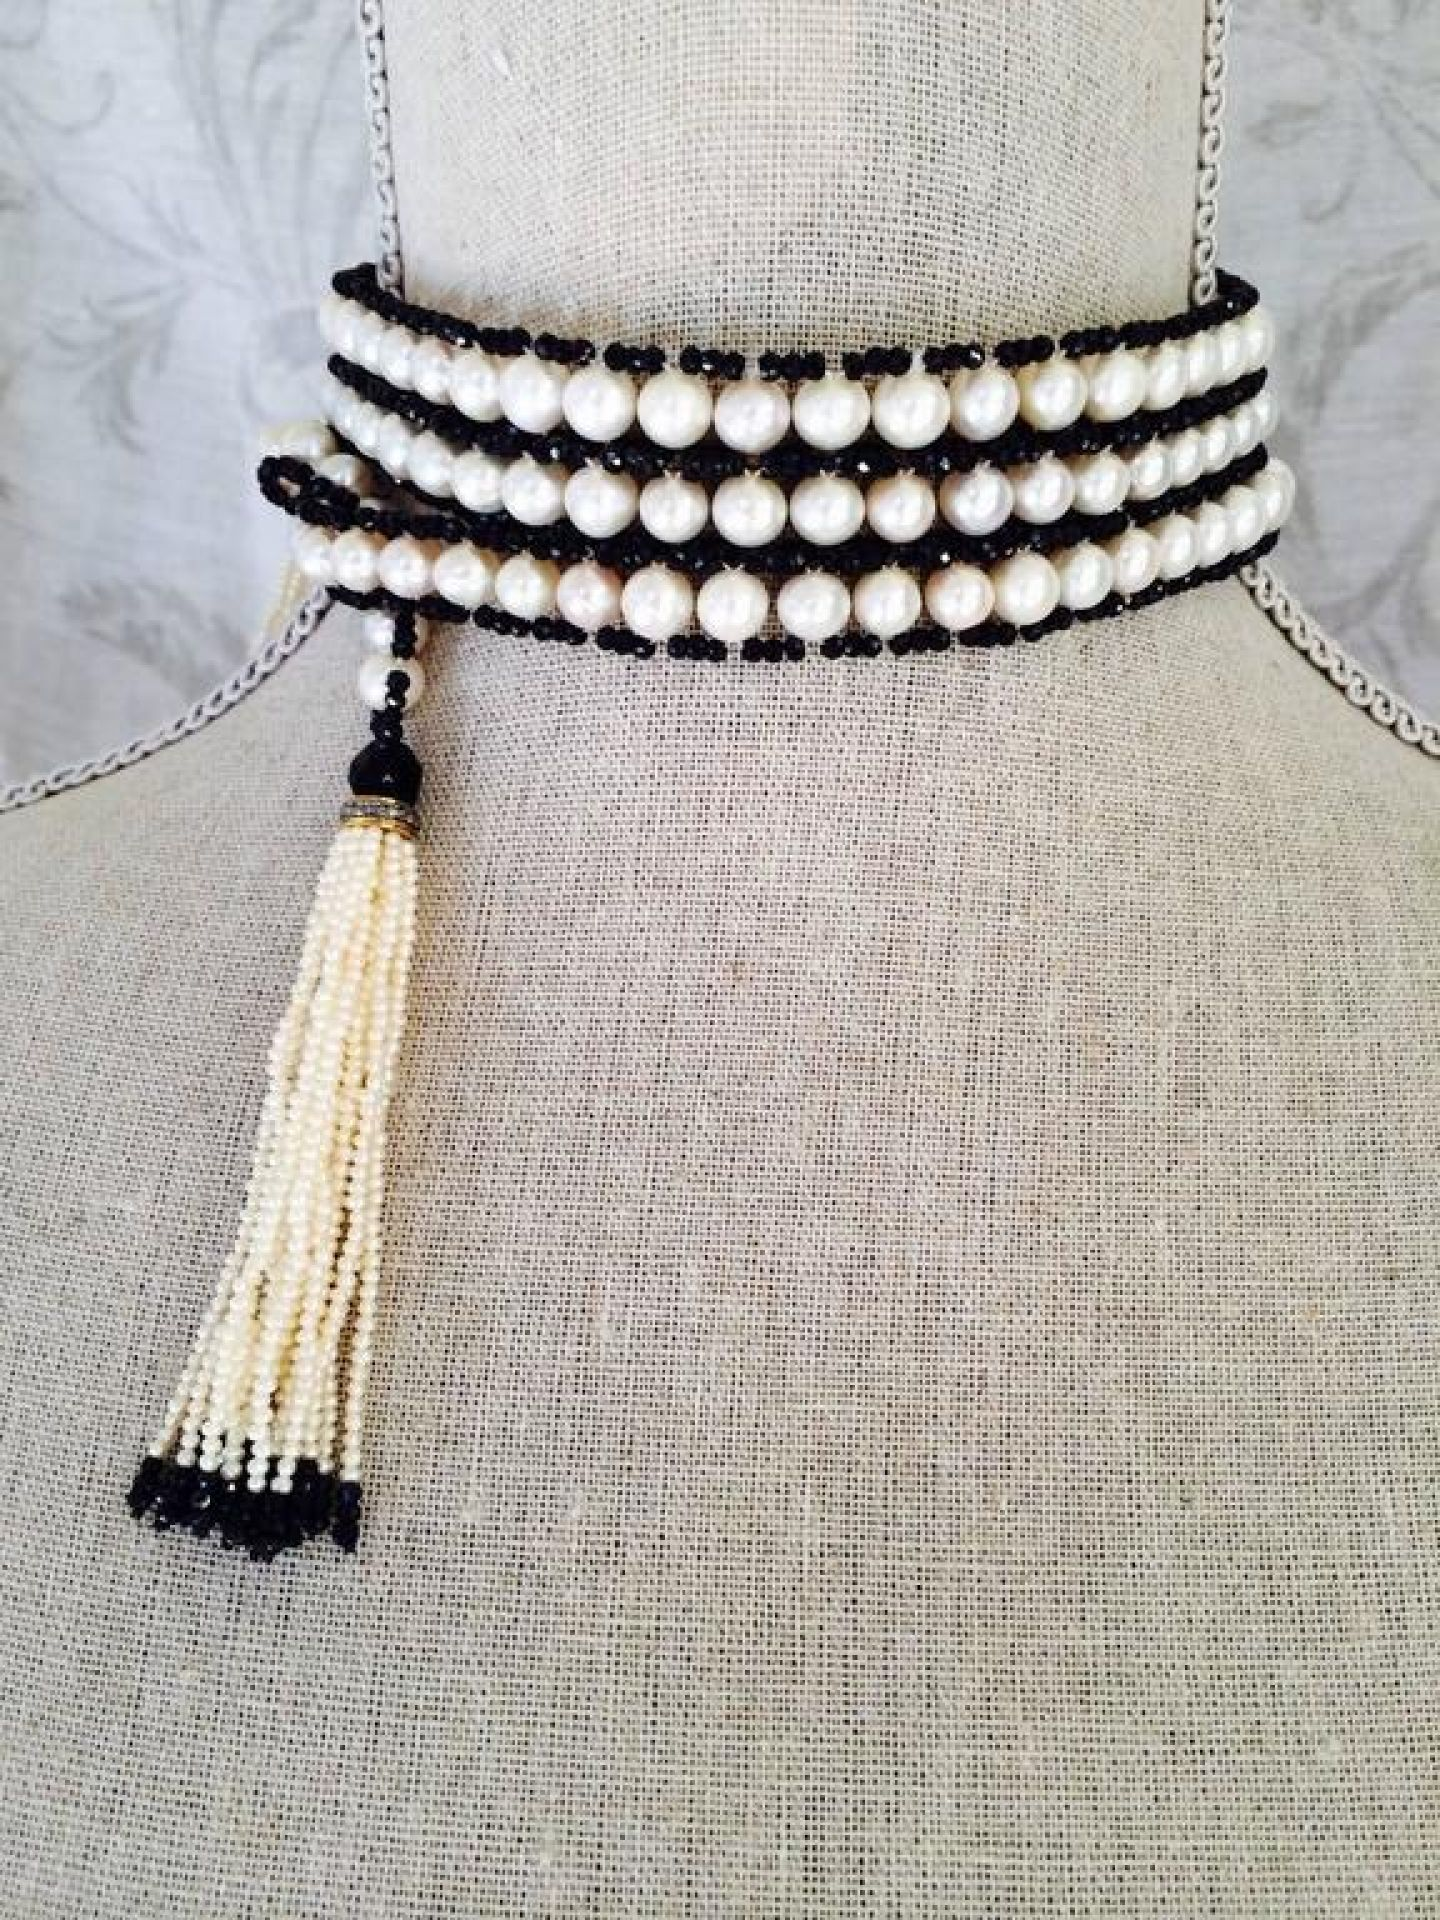 White Pearl, Faceted Black Spinel, and Onyx Beaded Sautoir with Diamonds